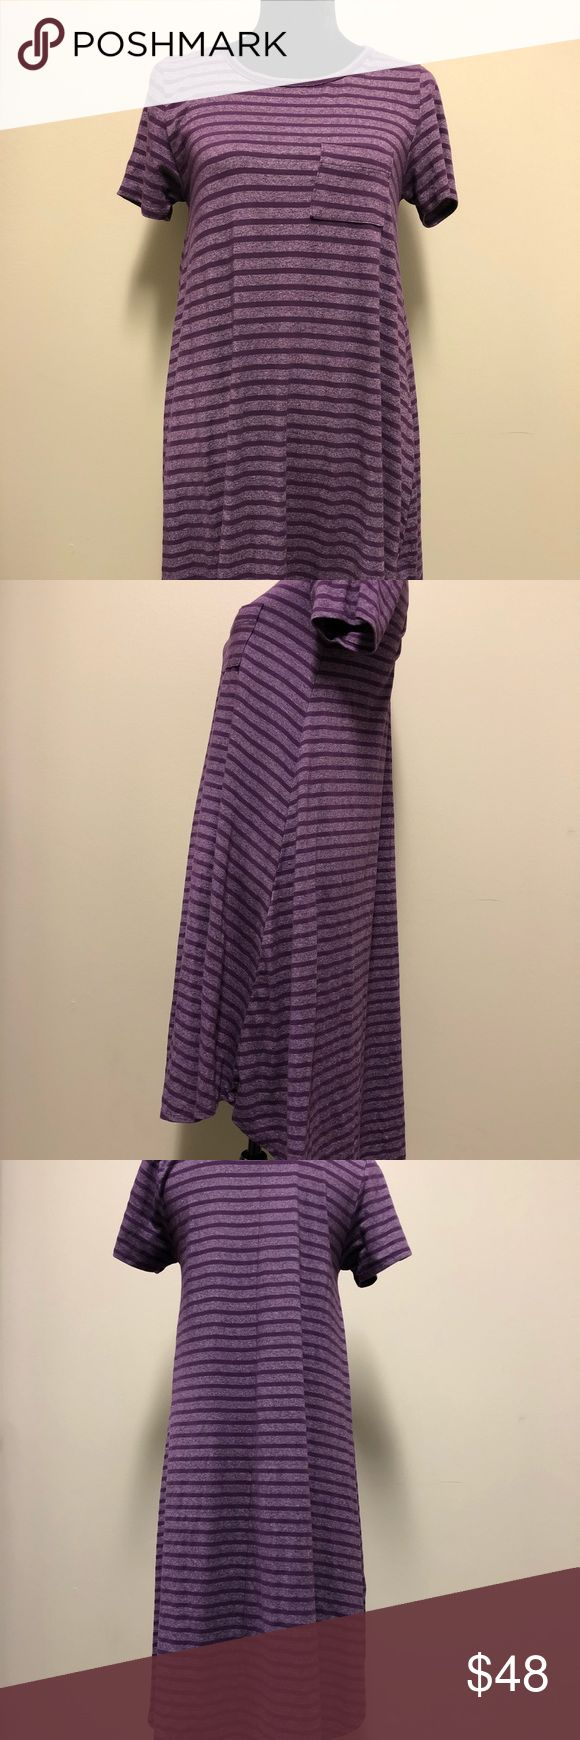 """LuLaRoe Purple Carly Dress Size XS LuLaRoe Purple Carly Dress   Size XS  Made in Mexico  64% cotton 32% polyester 4% spandex  16"""" armpit to armpit  2"""" armpit to end of sleeve 35"""" length  Check out the other items in my closet! ✨💫 LuLaRoe Dresses High Low"""